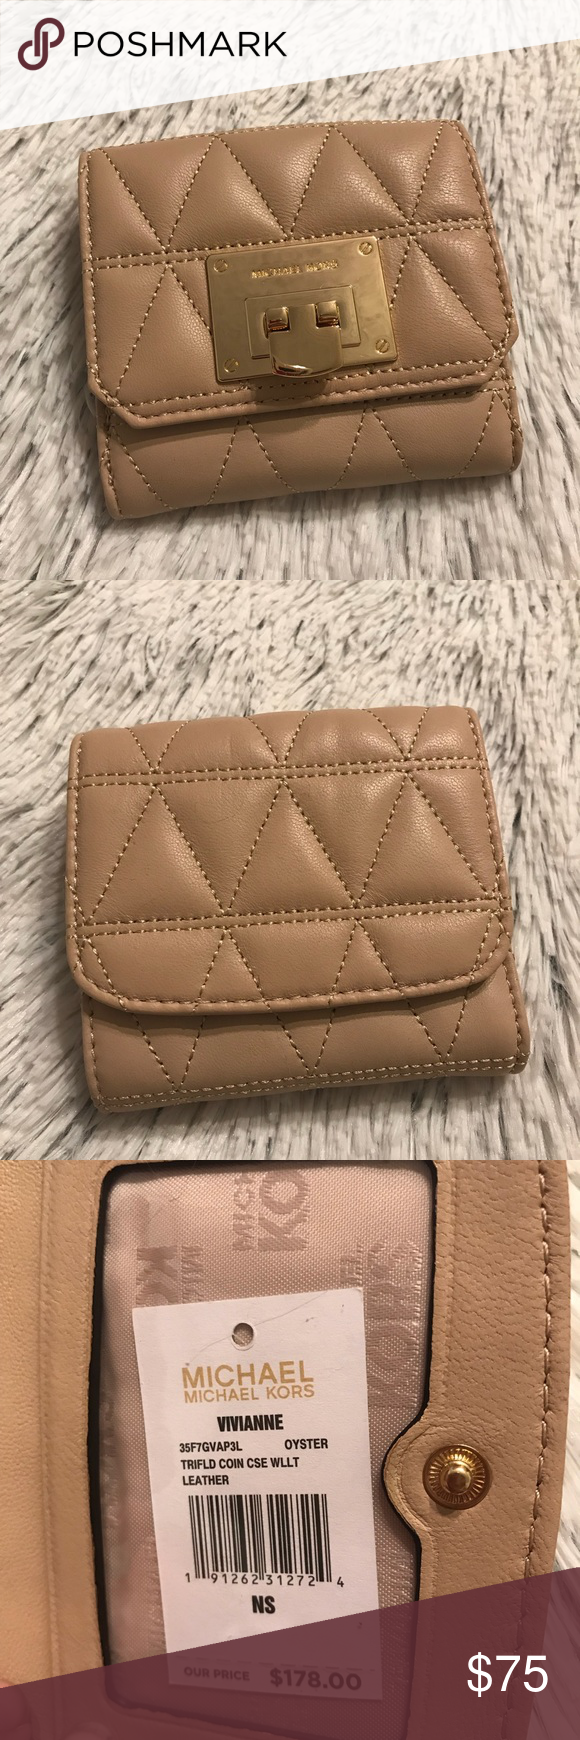 4b58aeb17422 NWT Michael Kors Vivianne Trifold Wallet Oyster Brand new with tags ...